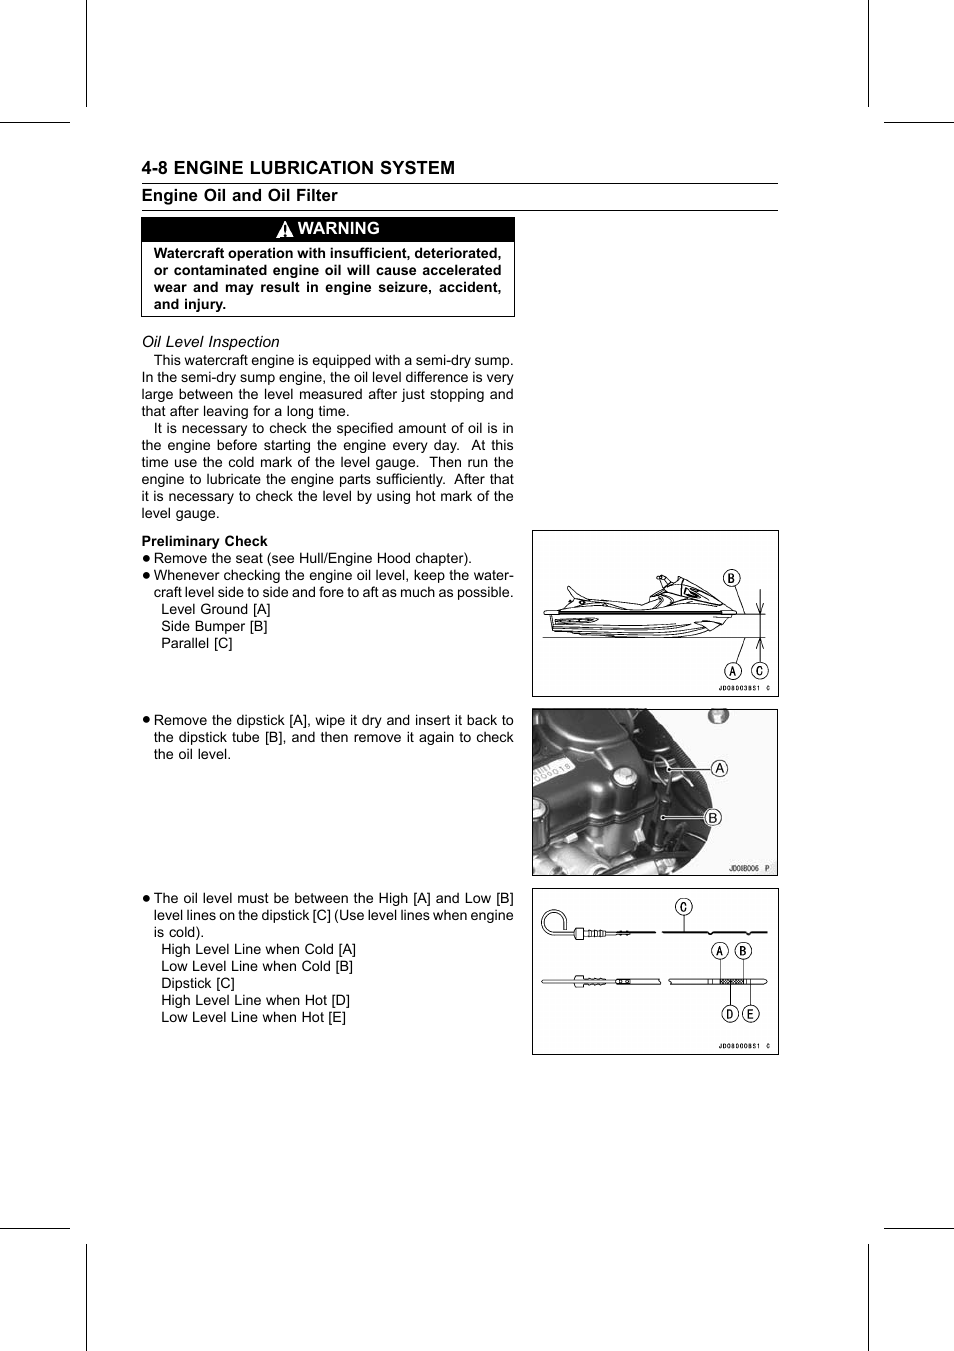 Warning, Oil level inspection, Engine oil and oil filter | Kawasaki STX-15F